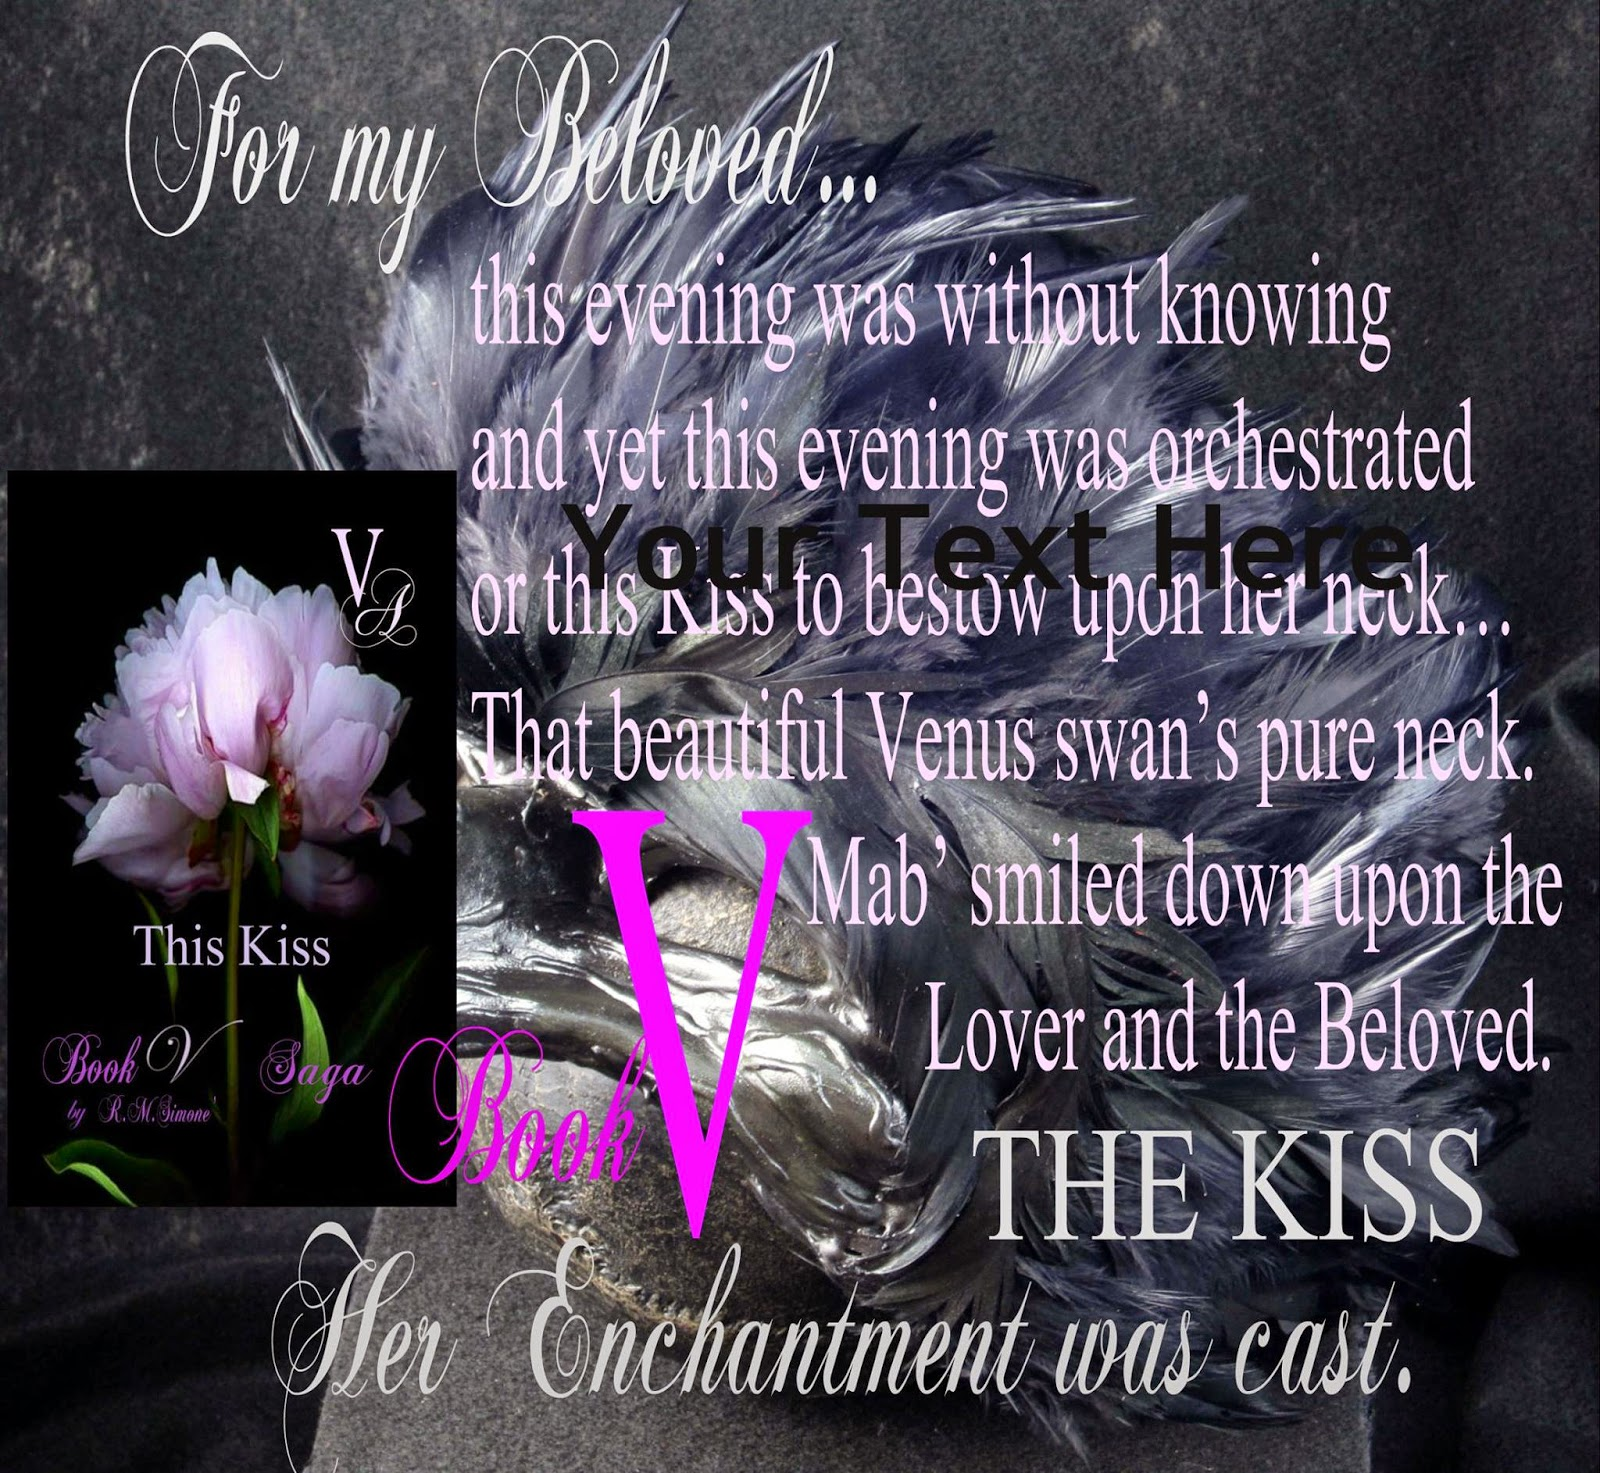 The Kiss by Roshandra Simone